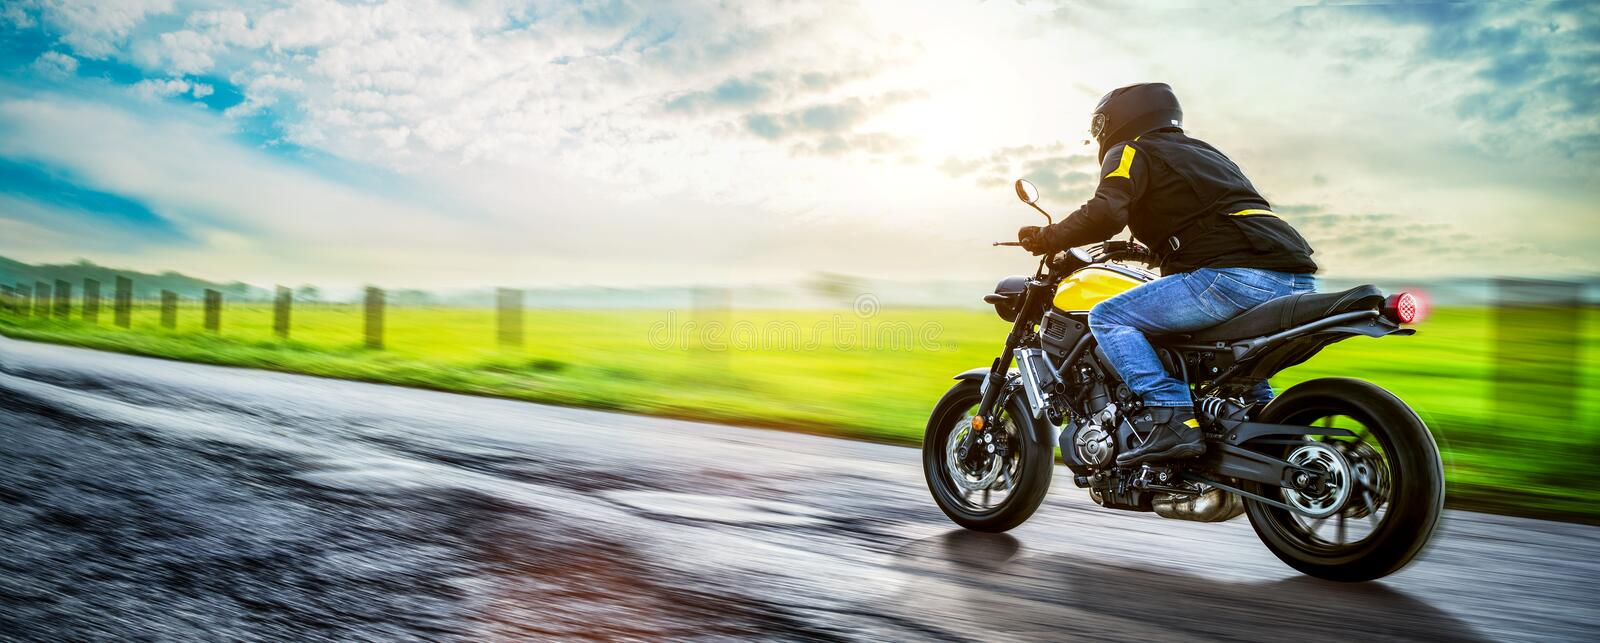 Motorbike on the road riding. having fun riding the empty road stock images